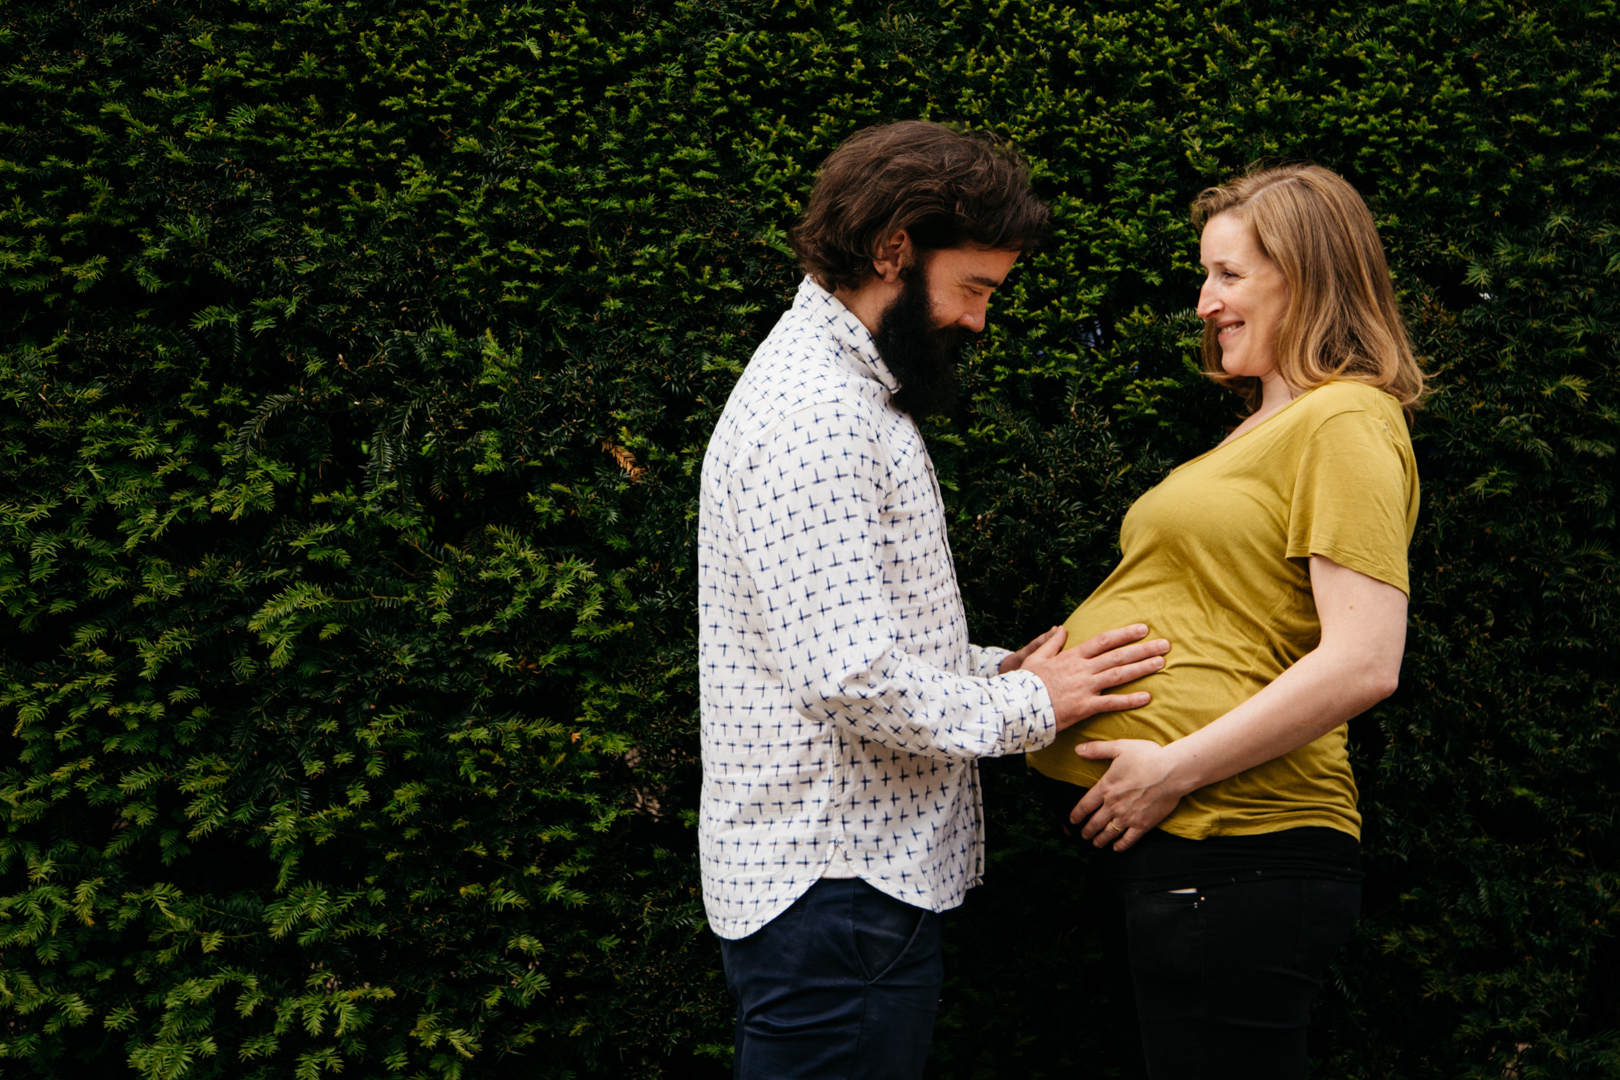 MATERNITY PHOTOGRAPHY - You're excited, nervous and scared because the biggest change of your life is coming. Let's show off this bump of yours.